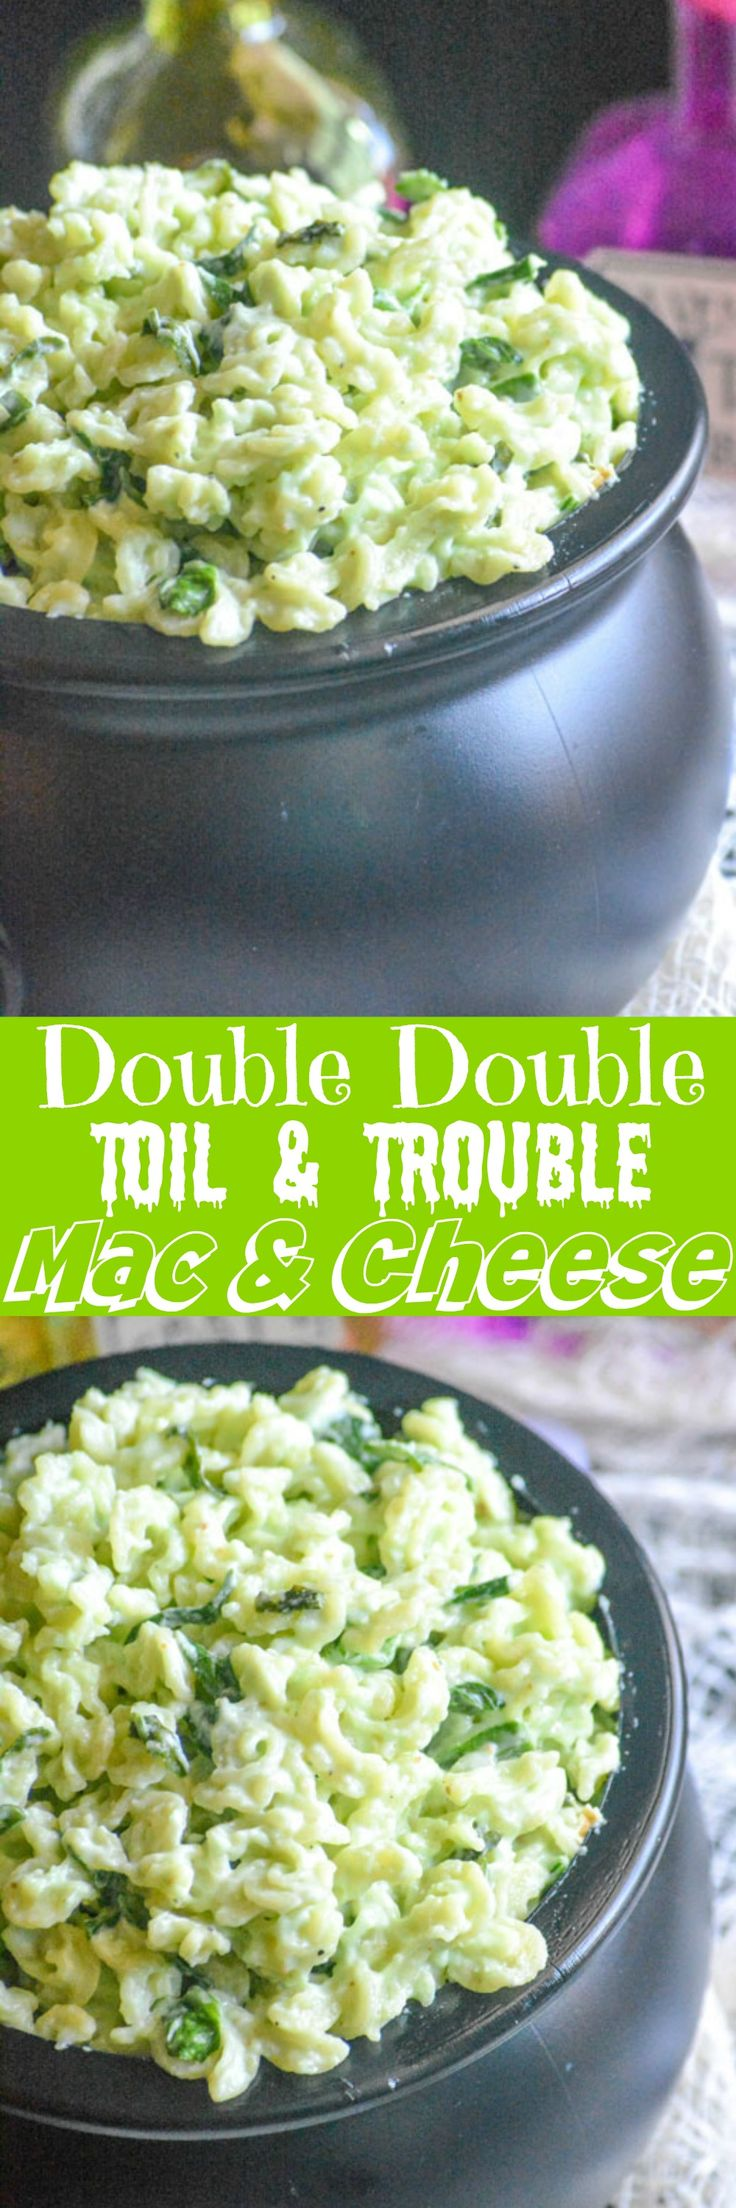 A quick & easy, oh so creamy white cheddar mac & cheese has been given a spooky spin. Double Double Toil & Trouble Macaroni & Cheese is a filling dinner, and the pasta dish that's perfect for getting the family into the spirit of Halloween.